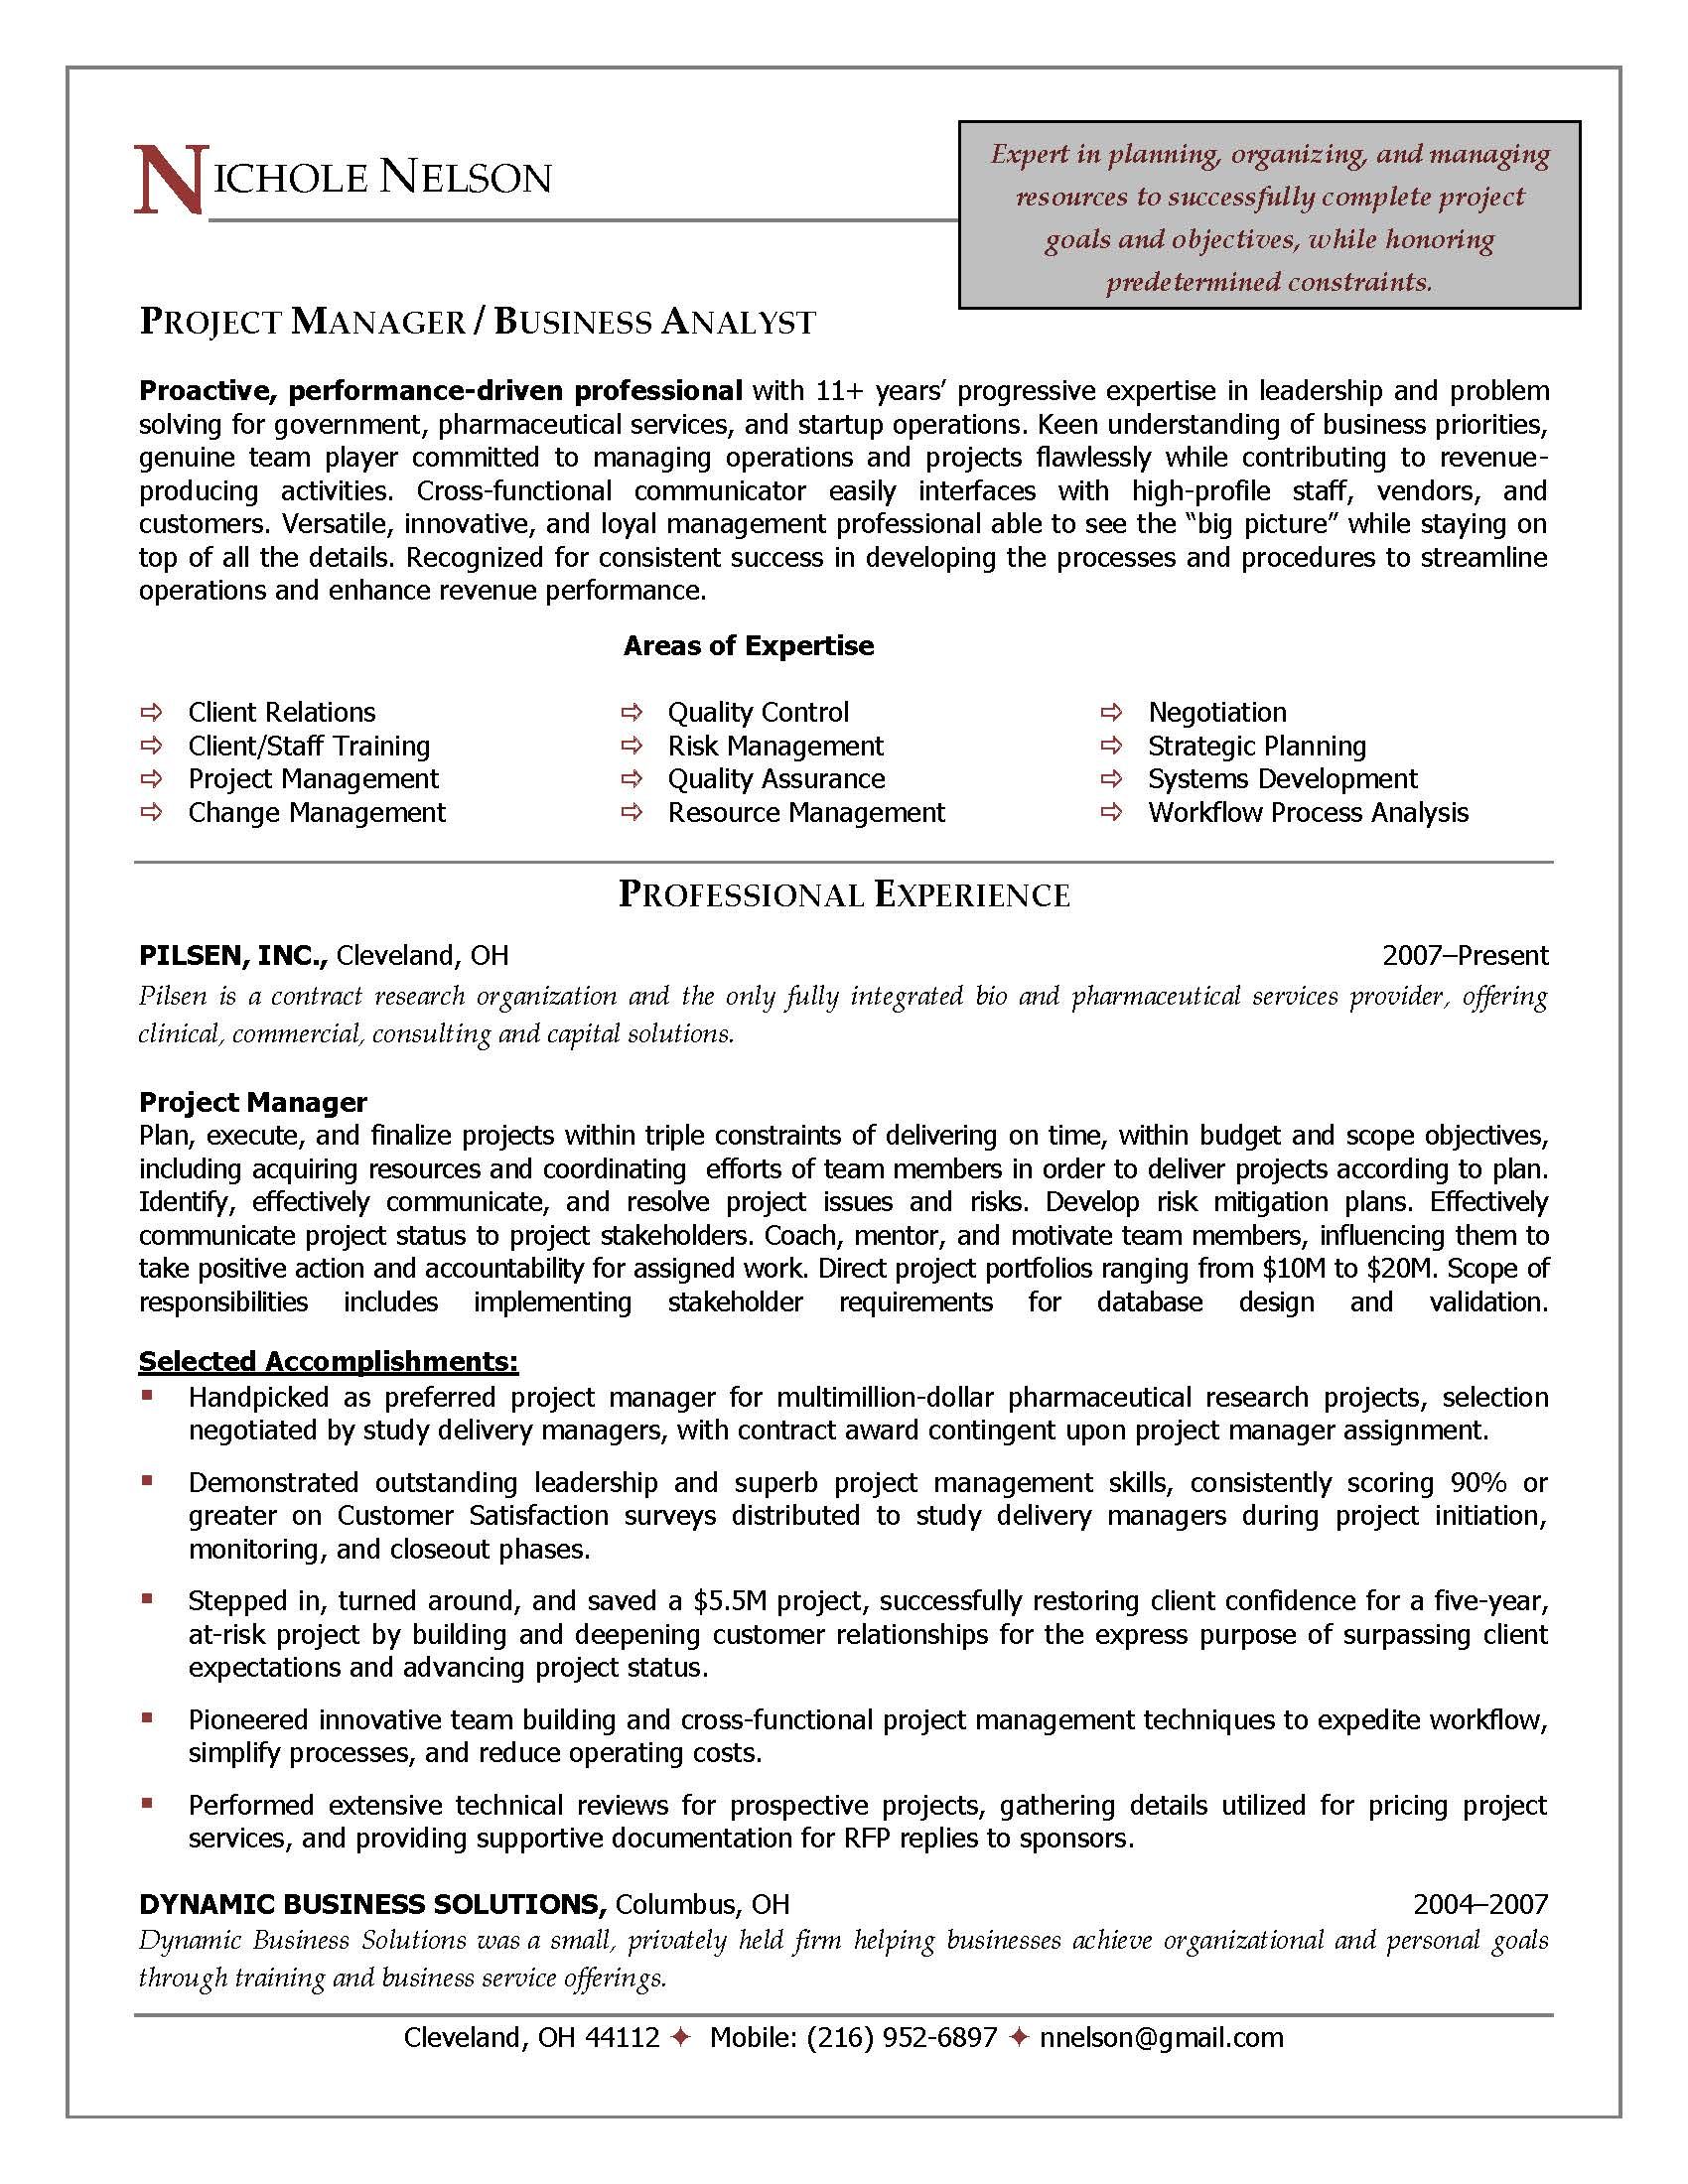 Admission Essay Custom Write Writing Cheap Thesis Proposal Editing